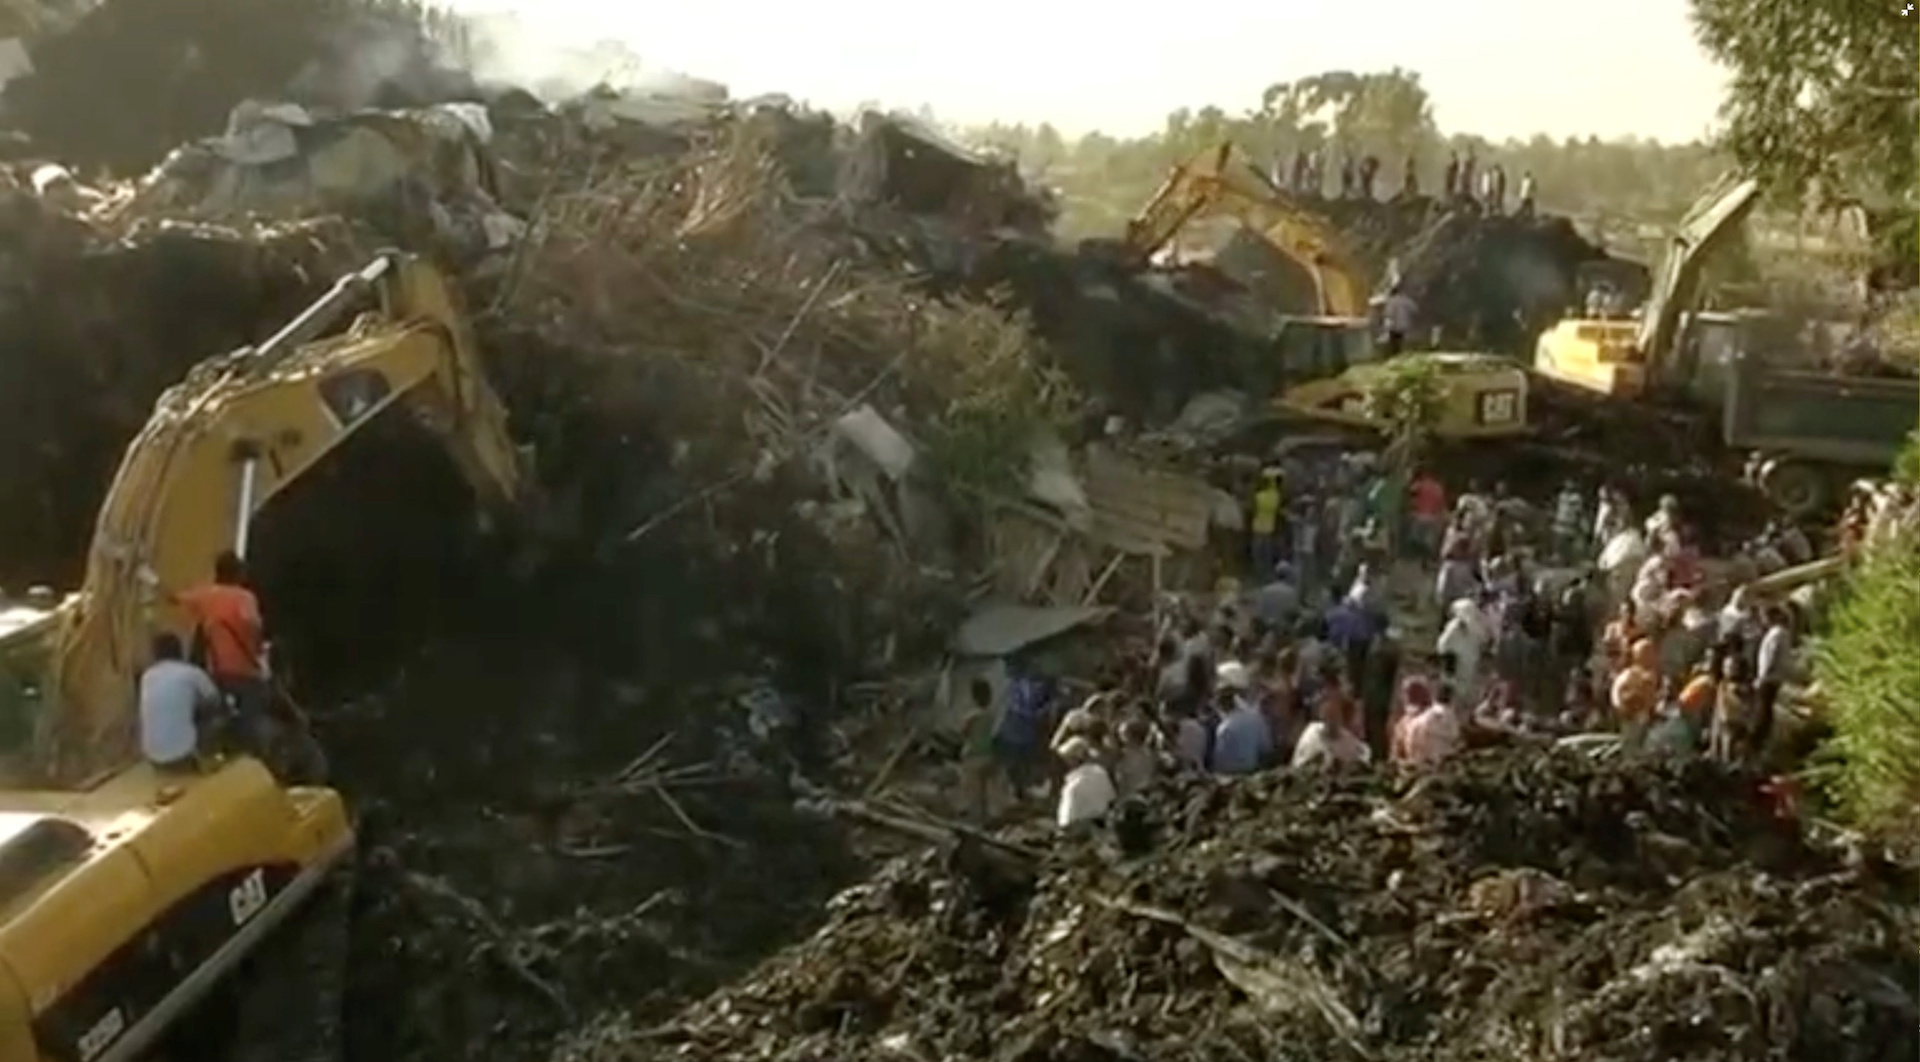 Excavators work after a landslide at a garbage dump on the outskirts of Addis Ababa, Ethiopia in this still image taken from a video from March 12, 2017.